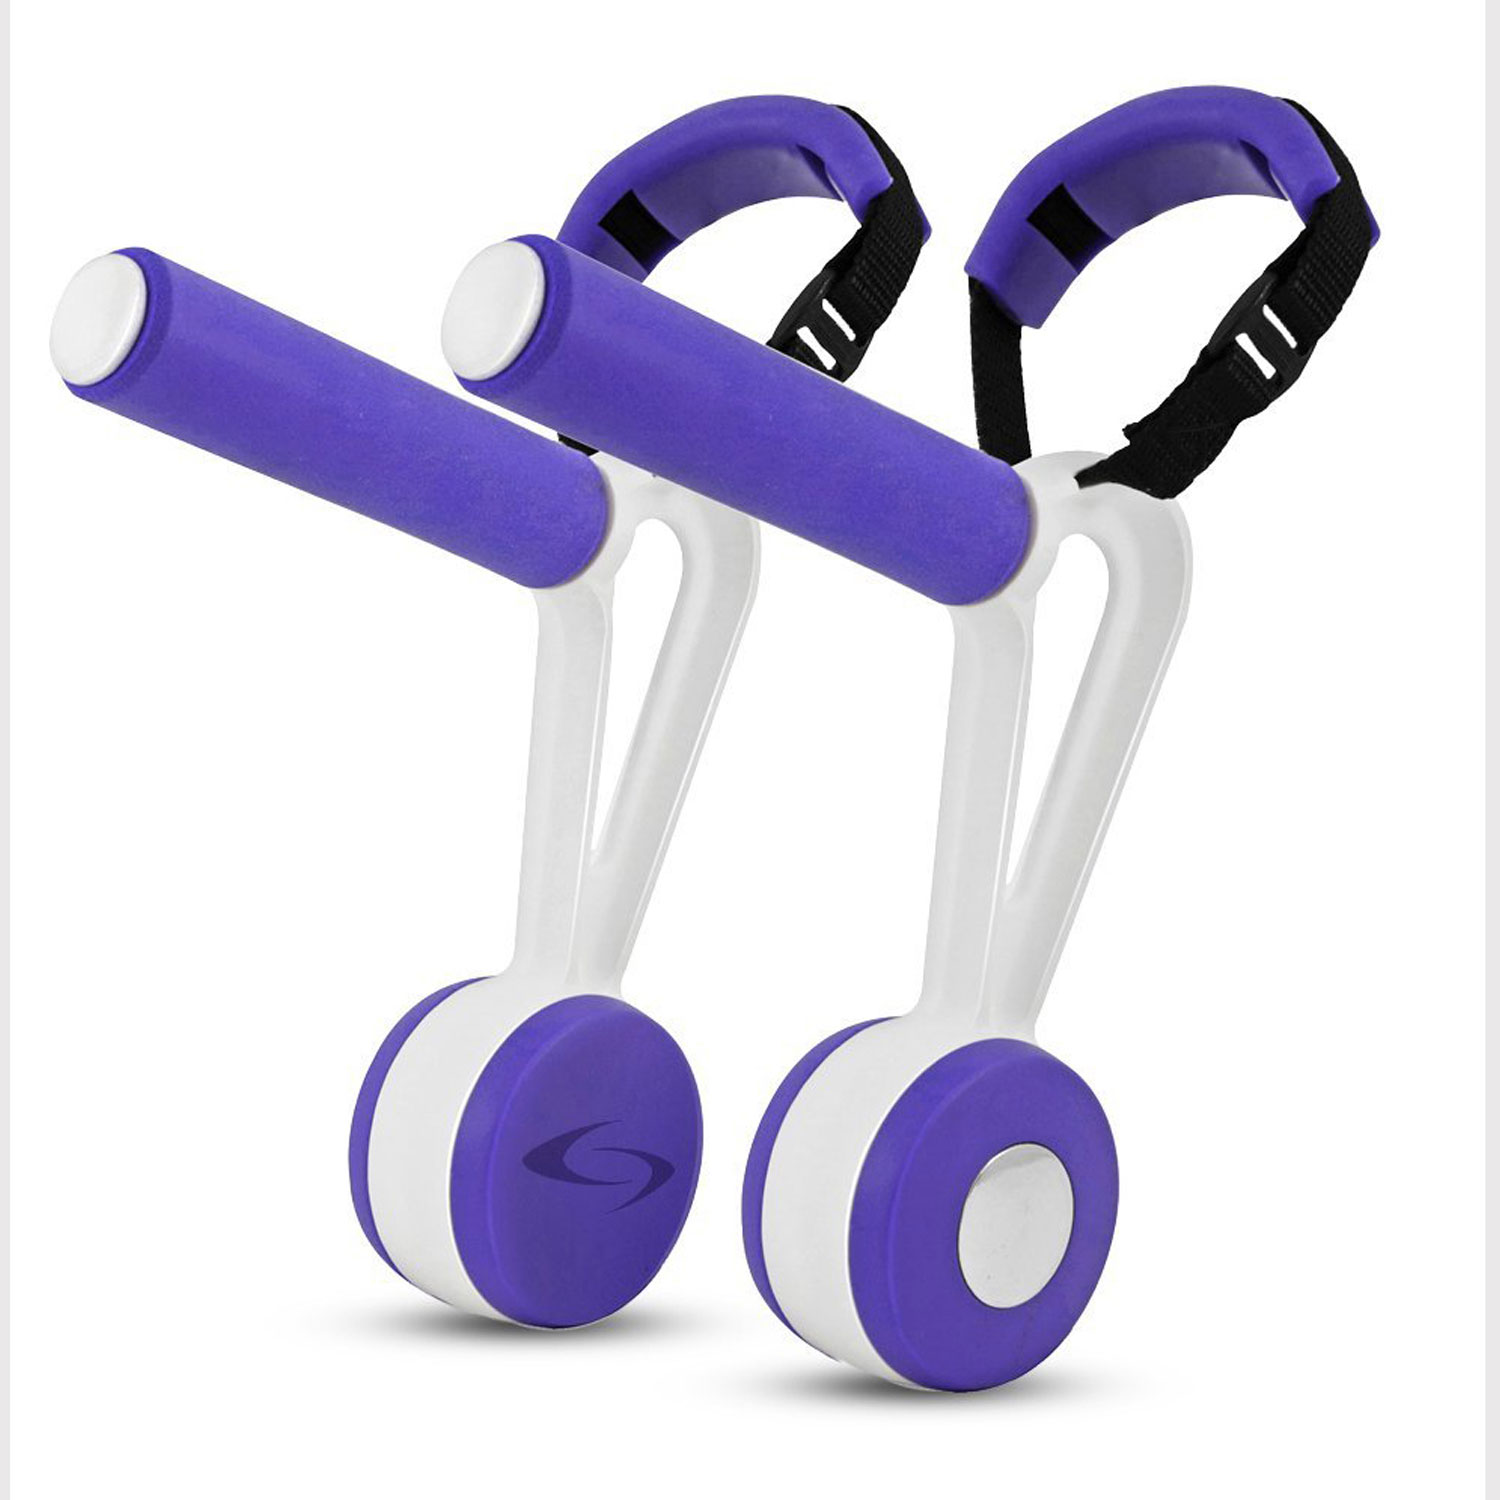 Full Body Workout Swing Weights